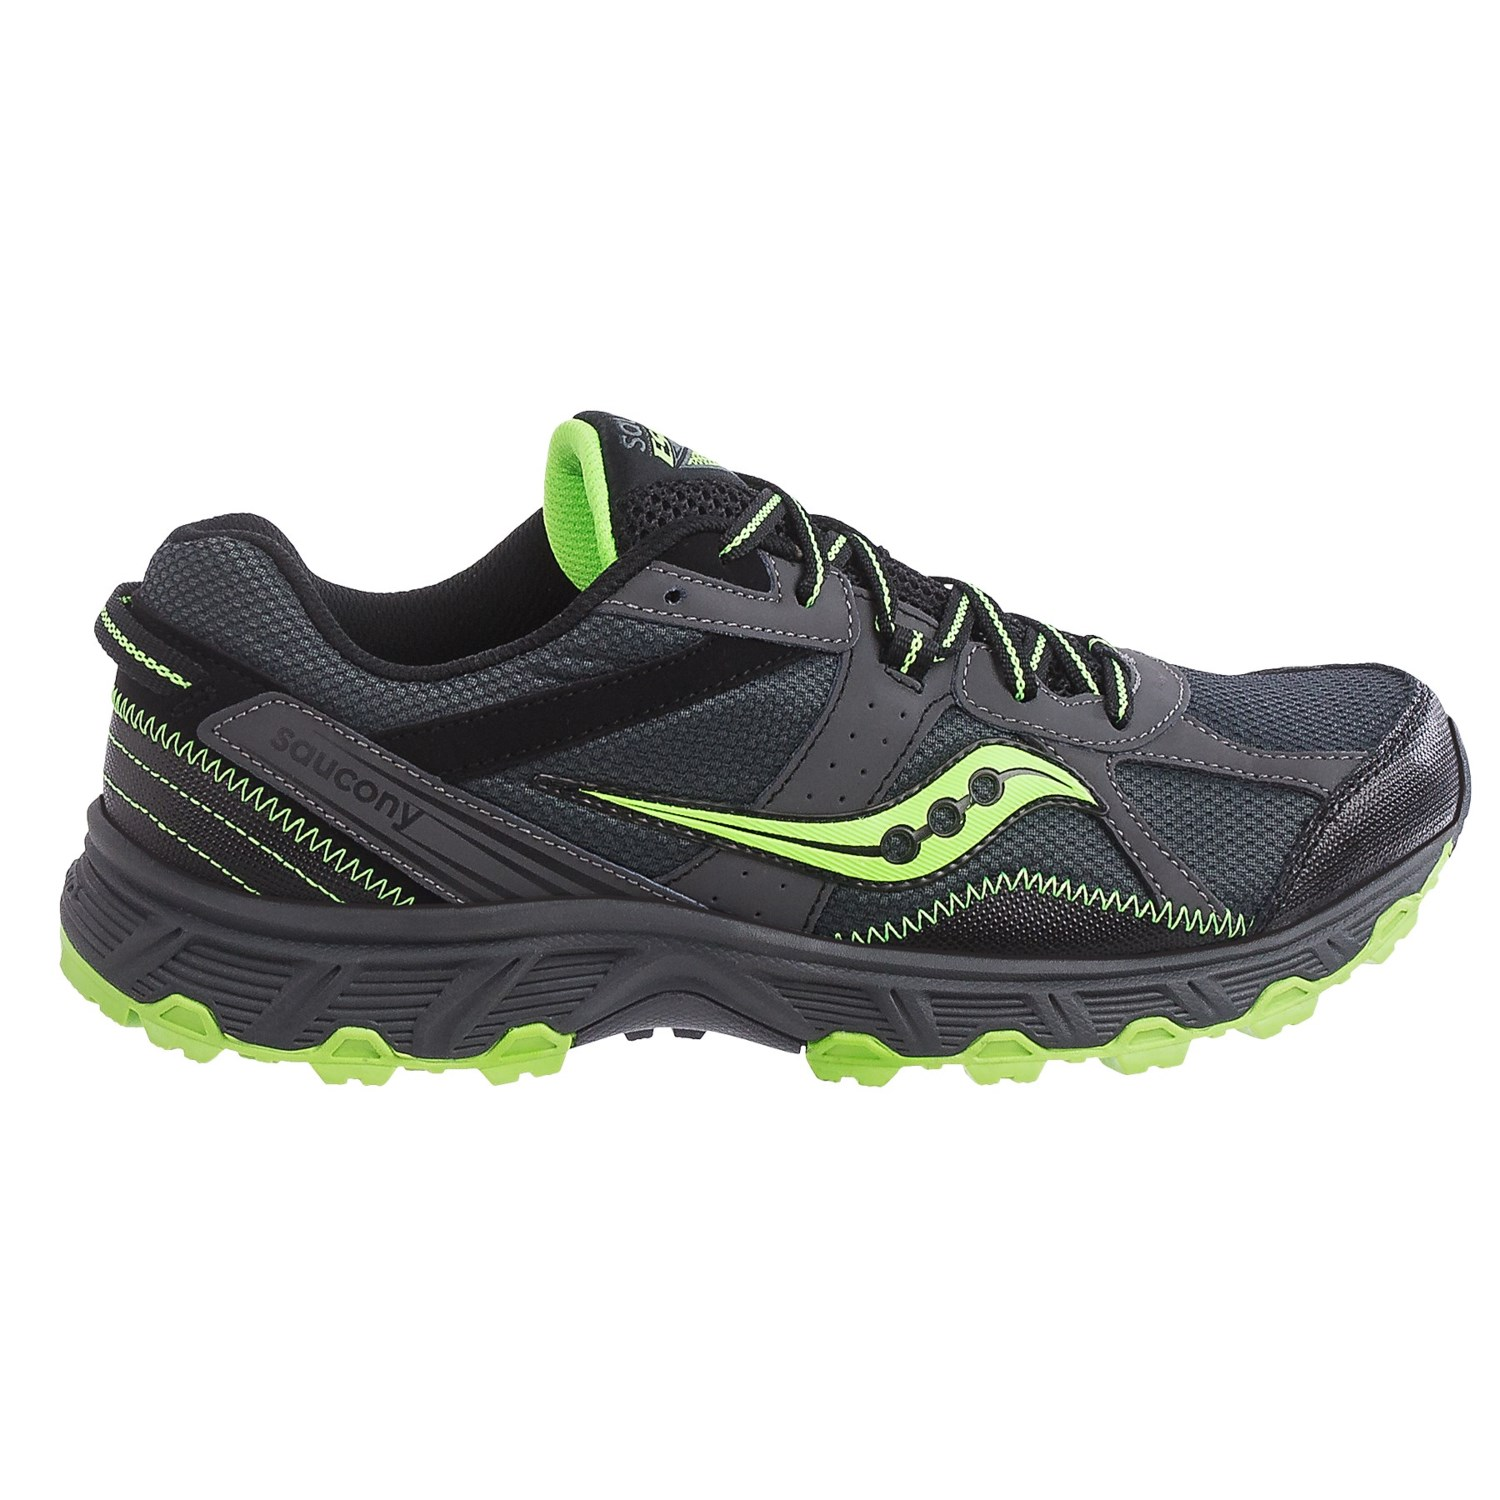 Saucony running shoes – choose the best one